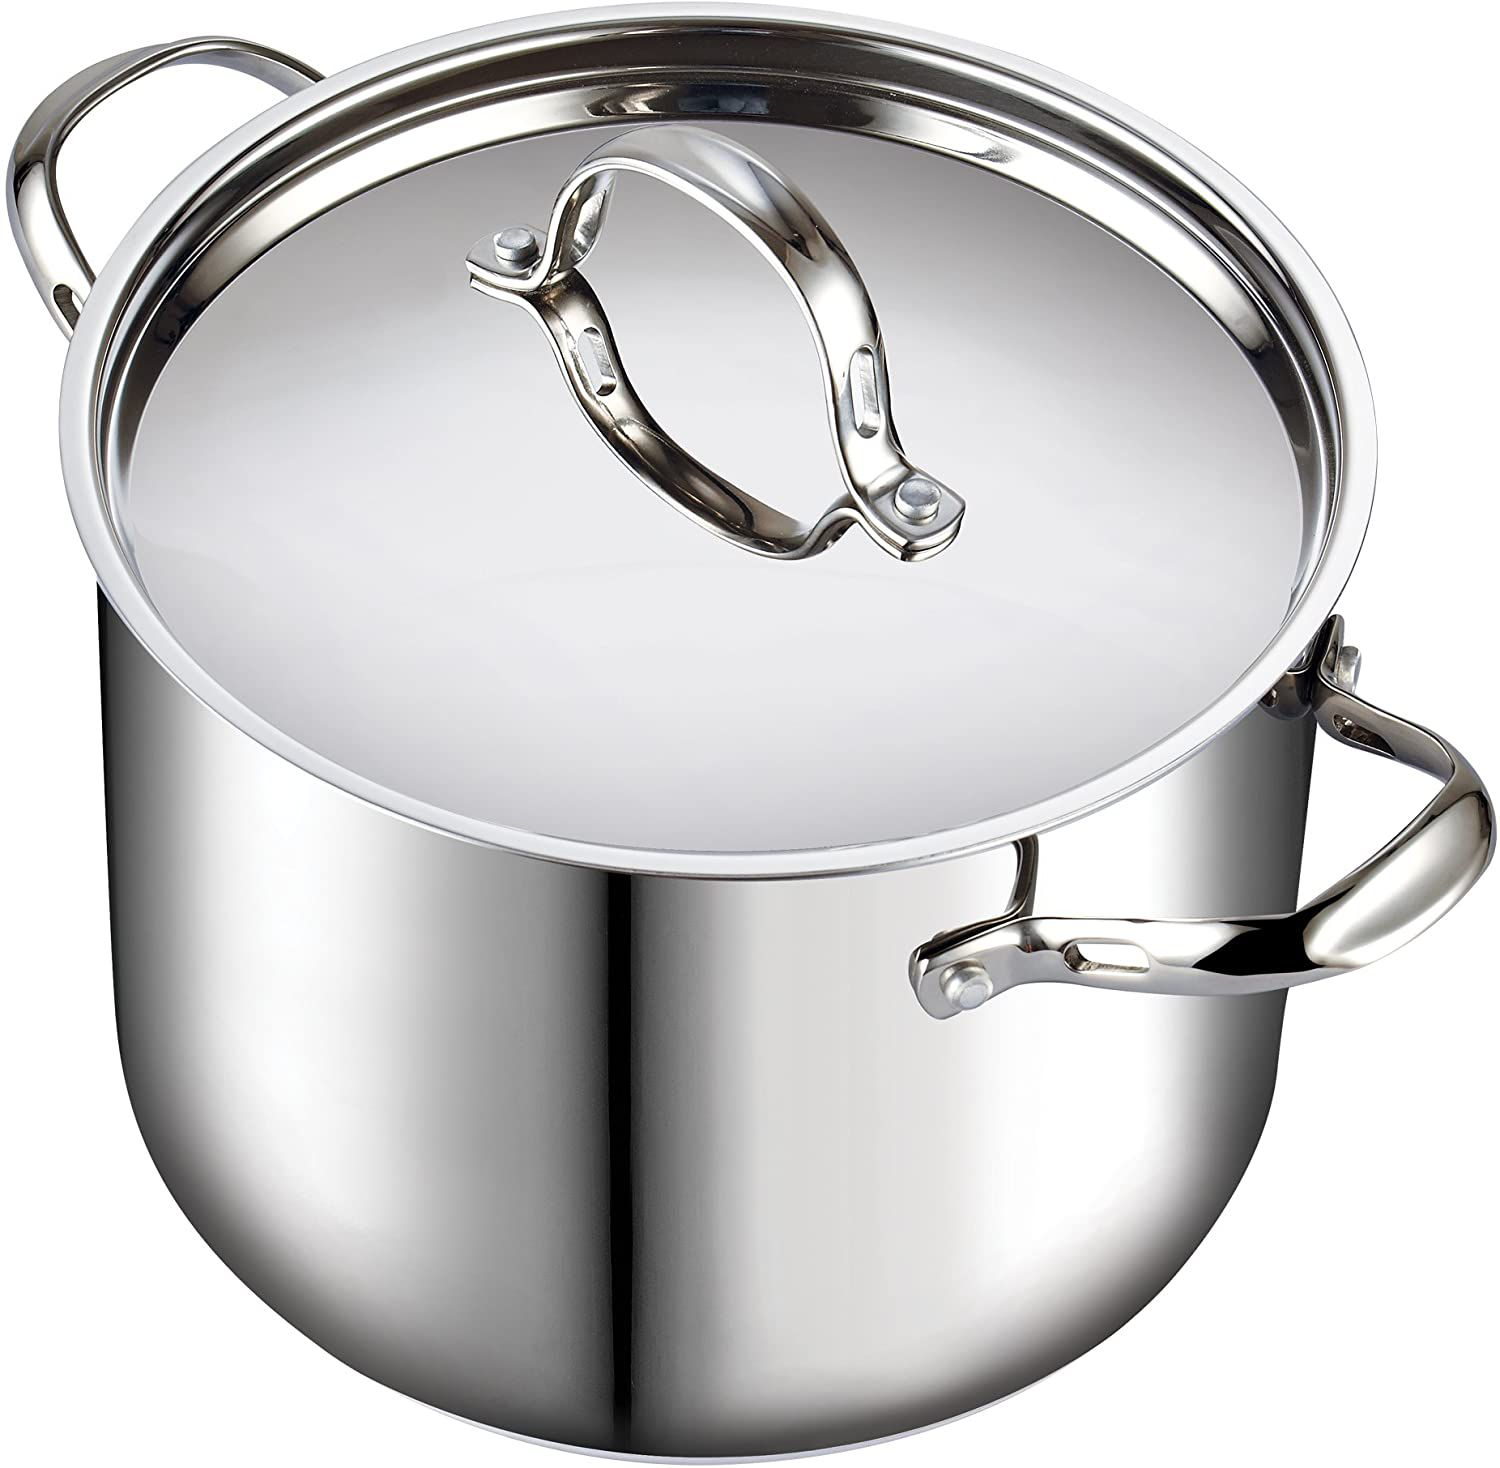 Cooks Standard 12-Quart Classic Stainless Steel Stockpot with Lid